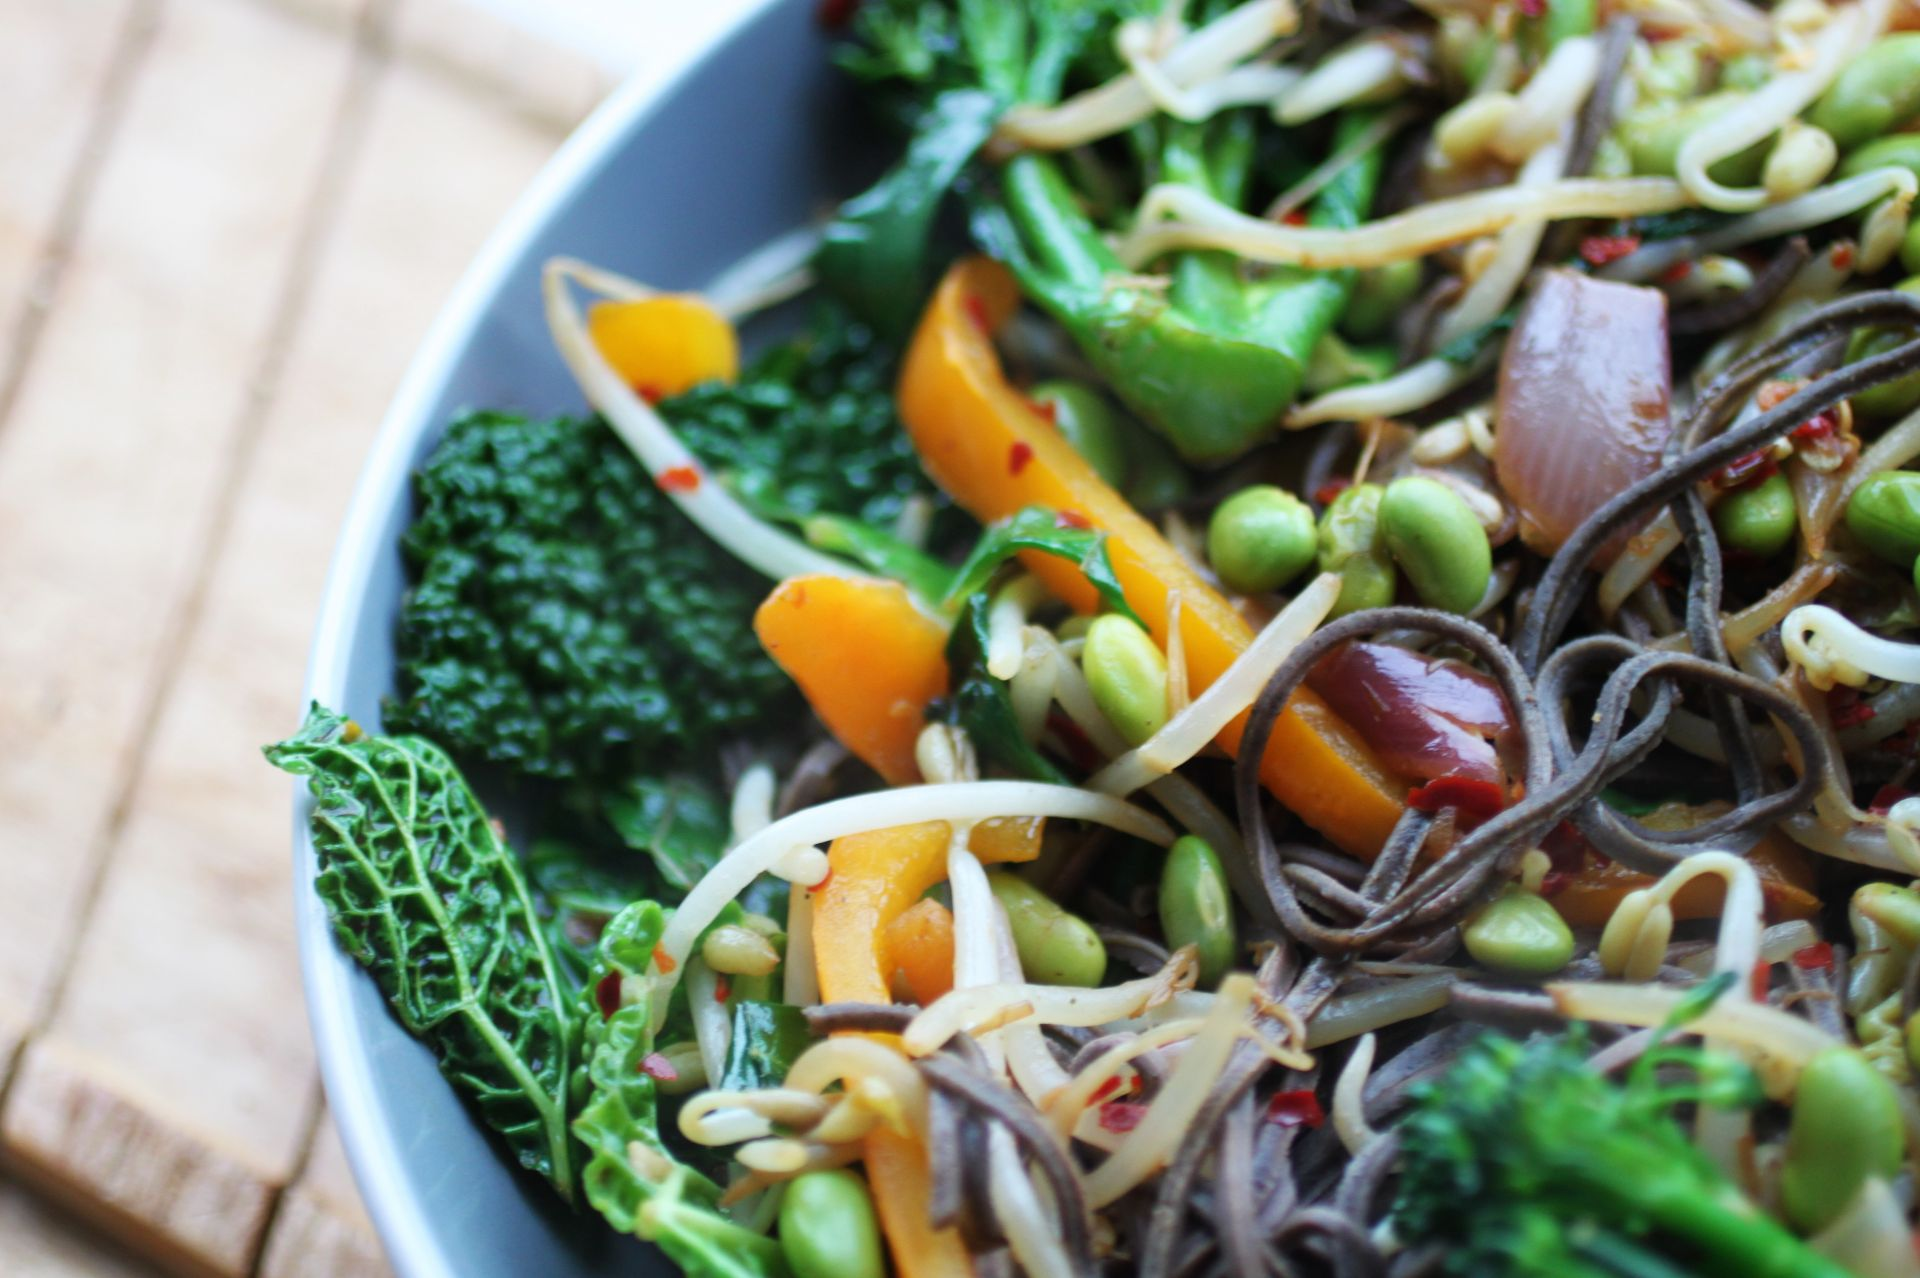 High Protein Vegan Stir Fry Recipe No Tofu Glow Steady